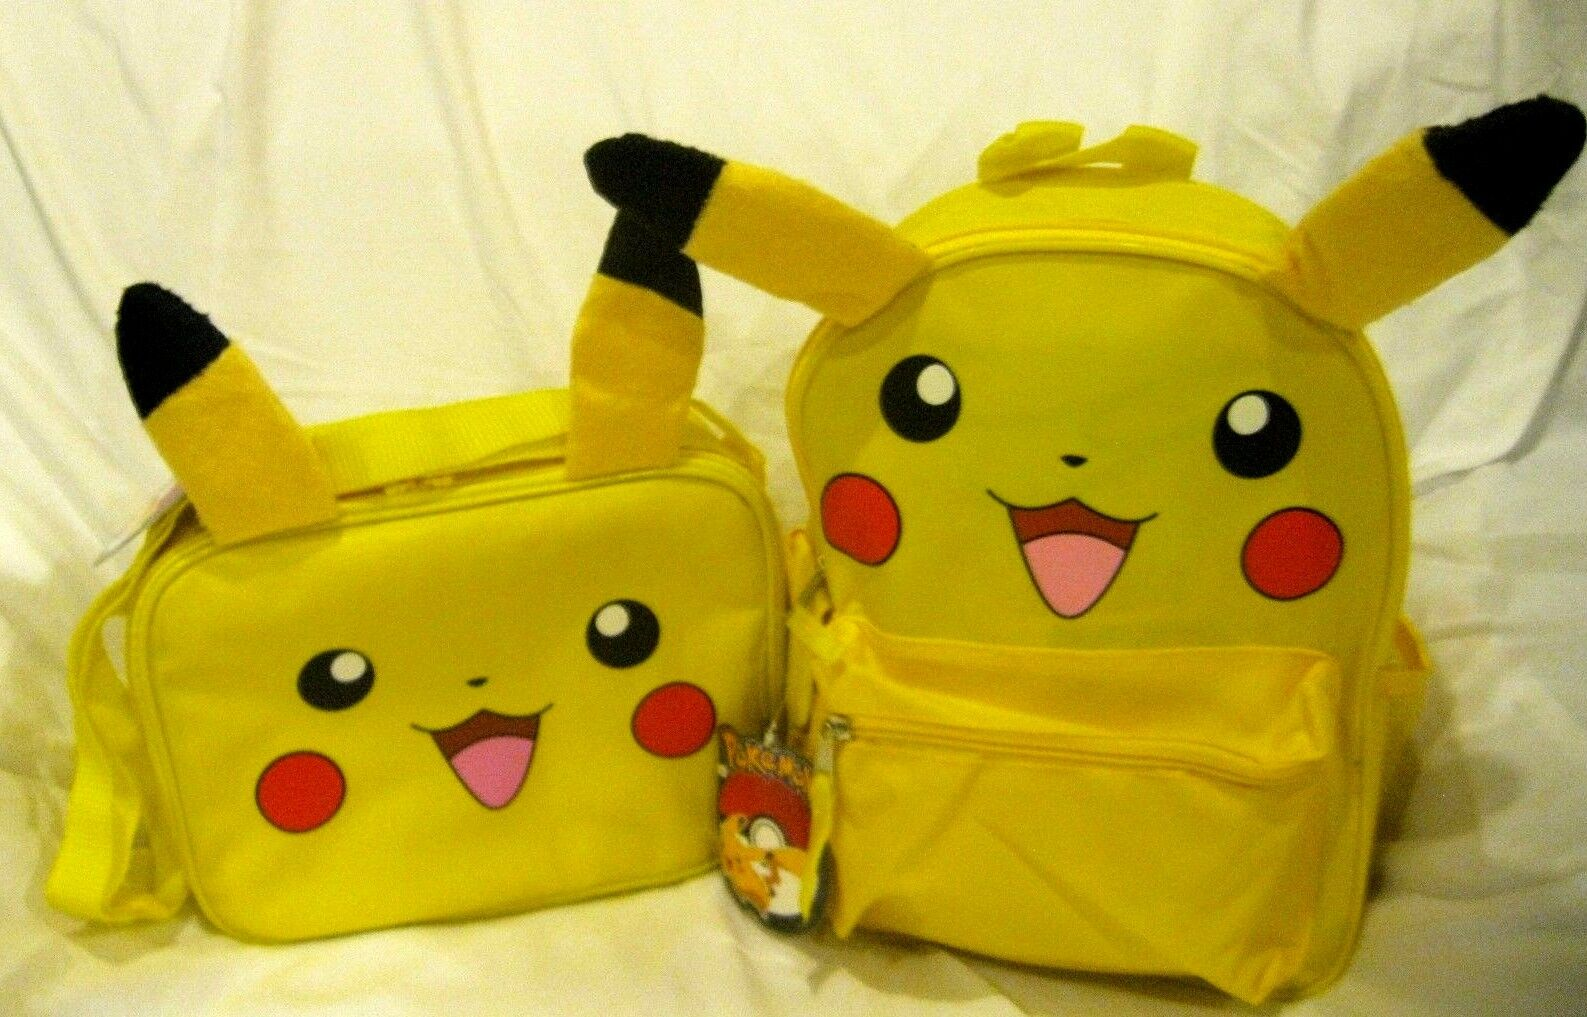 Pokemon Pikachu with Ears 12  Backpack + 9.5  Pikachu with Ears Lunch box-New